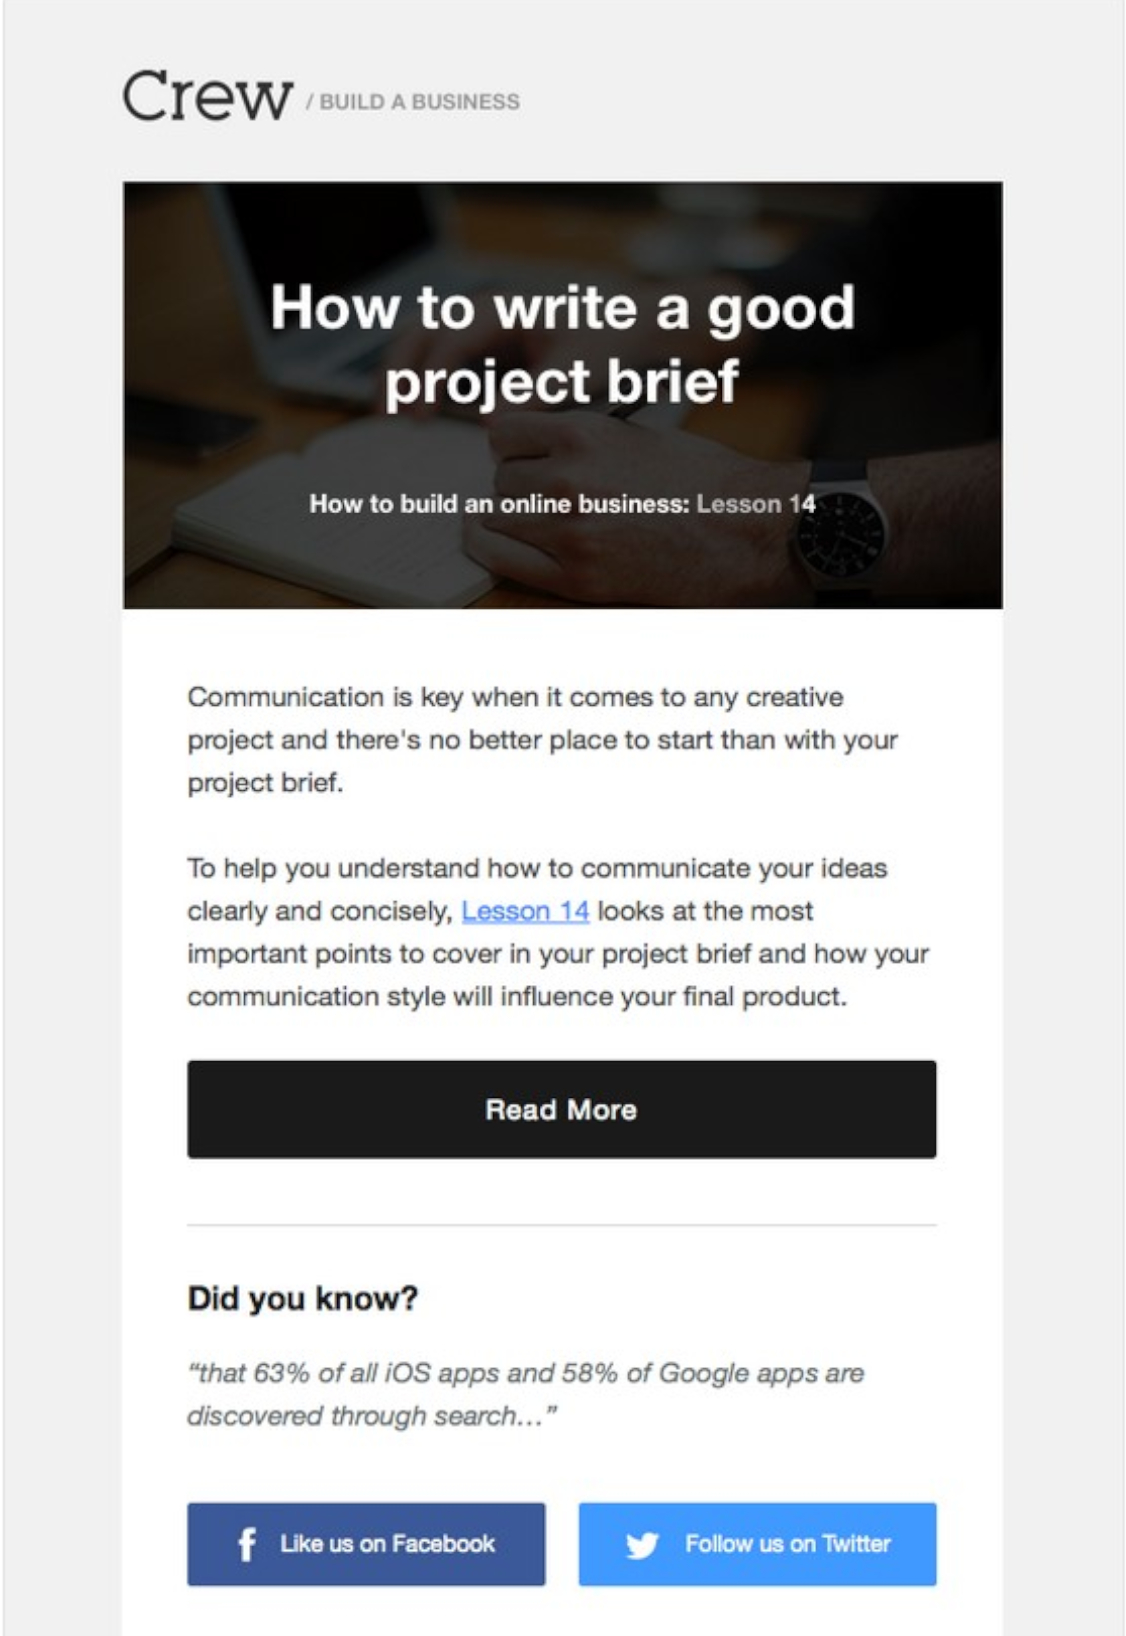 How-to guides can be a strategic way to share relevant content.